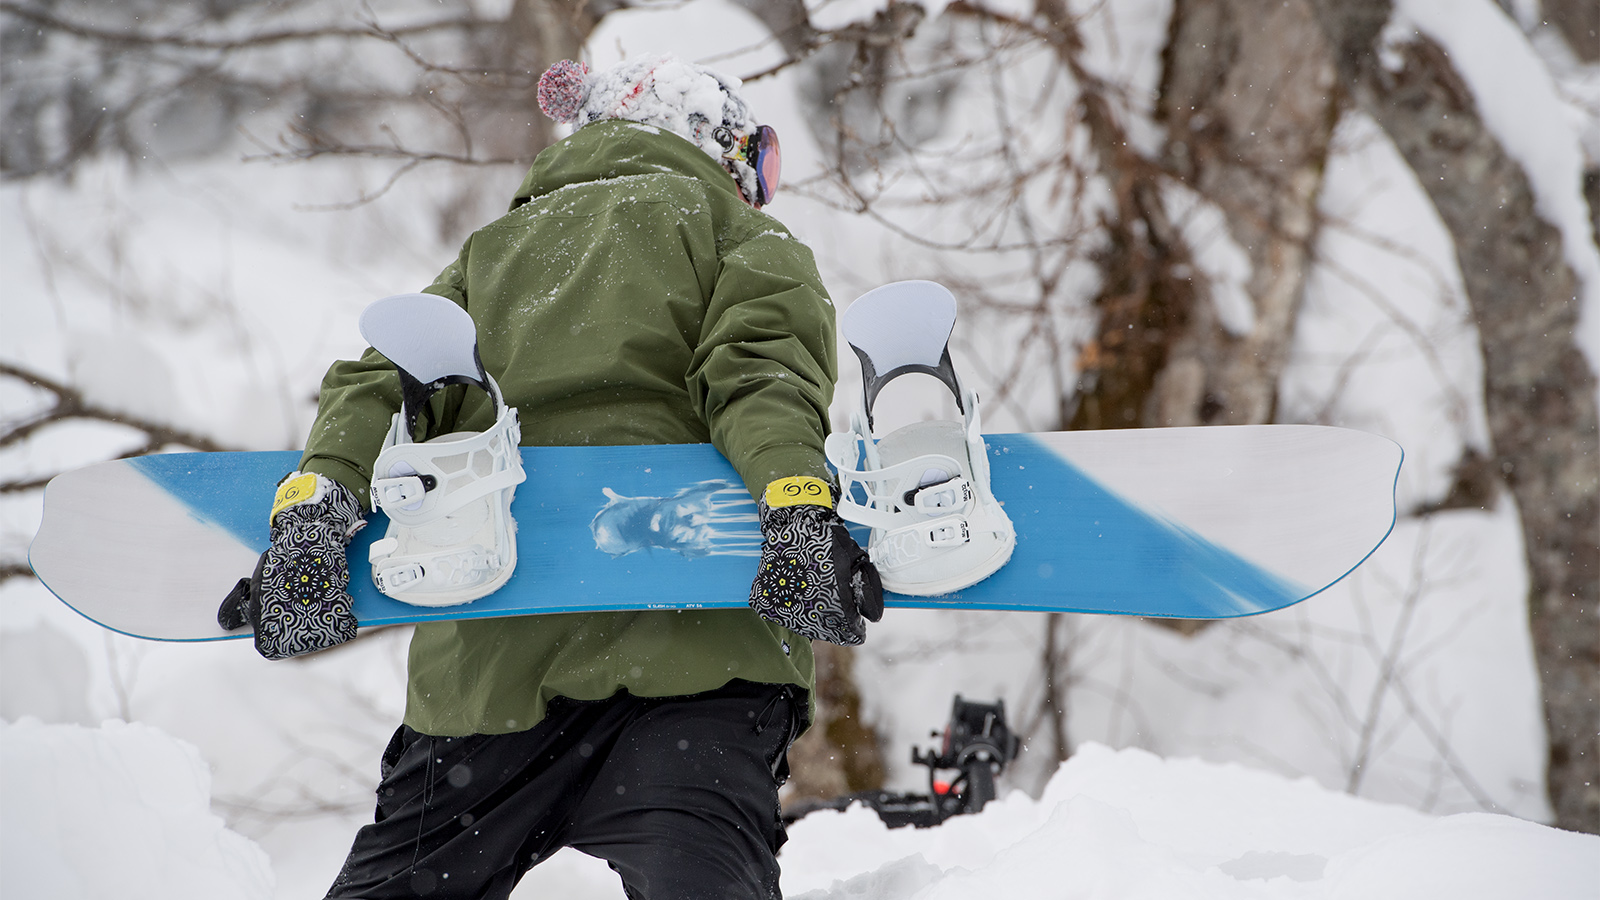 Slash FW20/21 Splitboard Hardgoods Preview